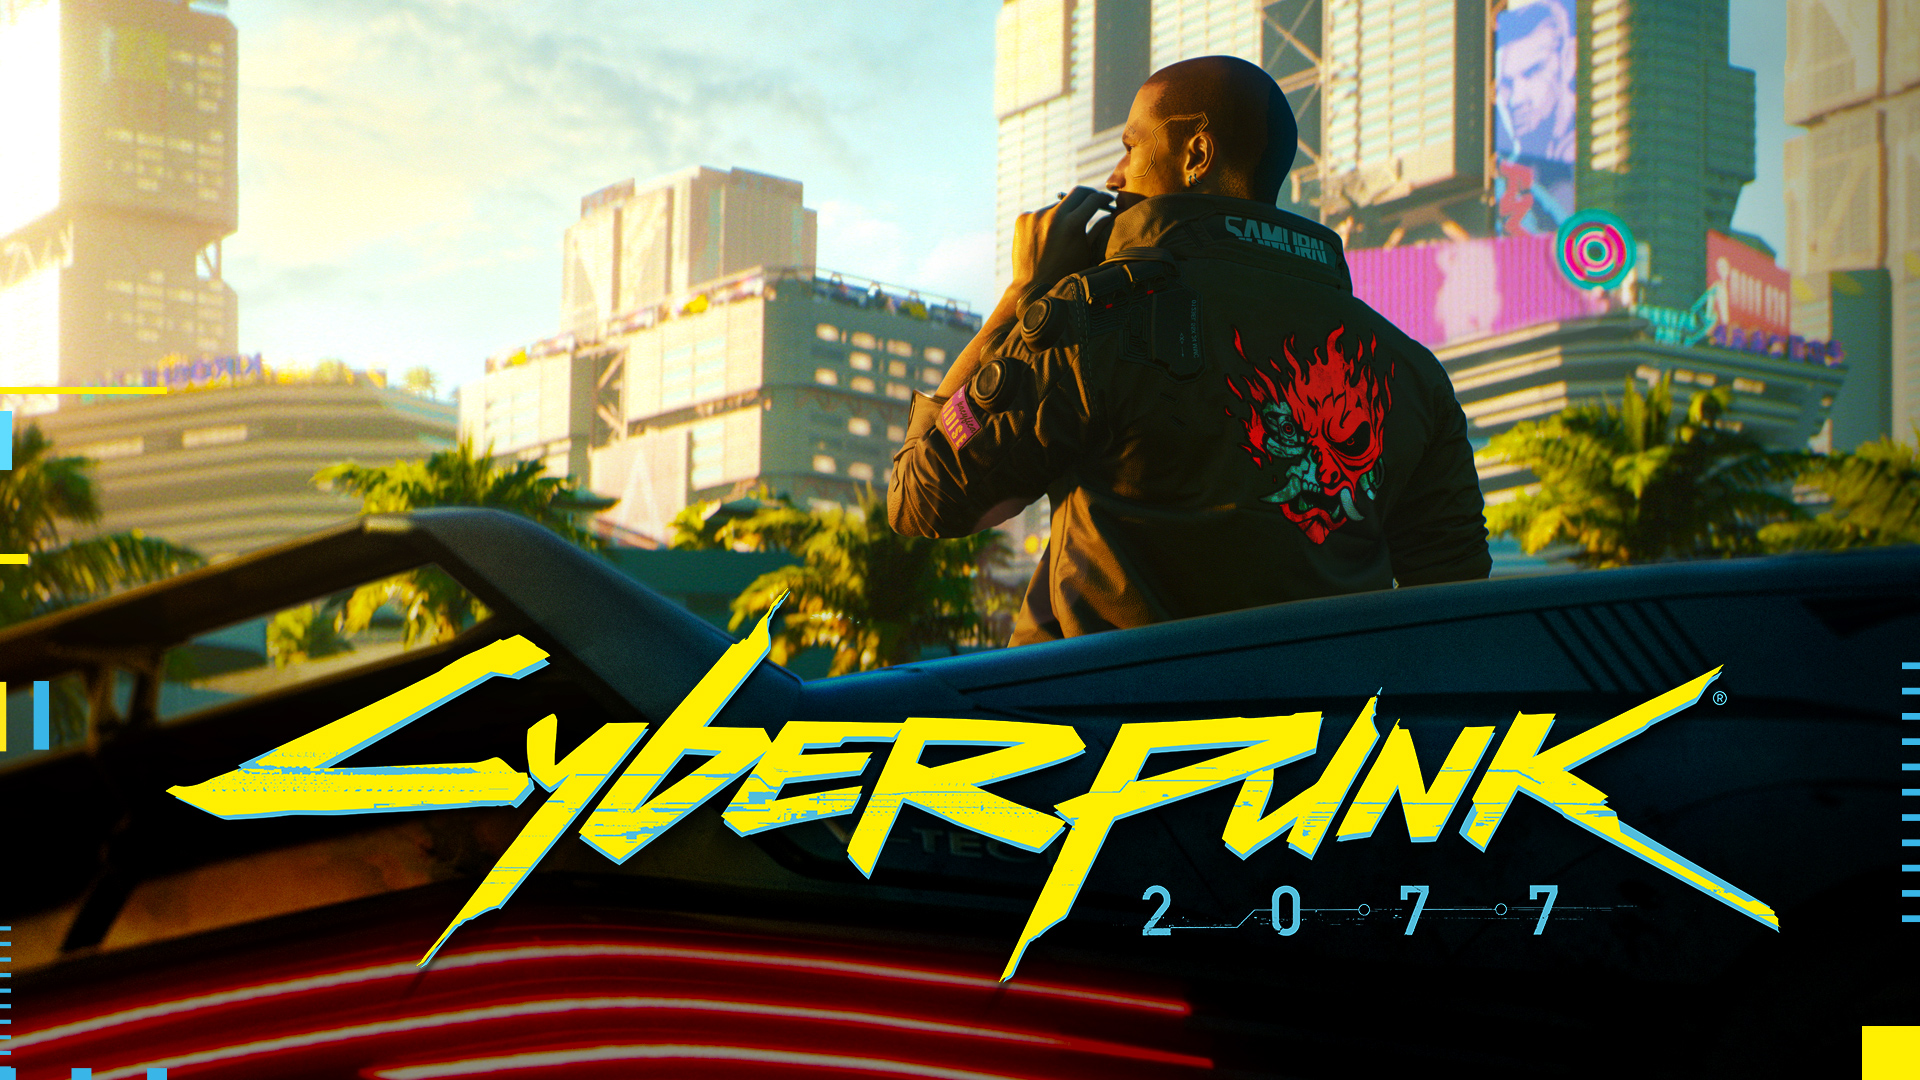 Warner Bros. Home Entertainment To Distribute Cyberpunk 2077 in